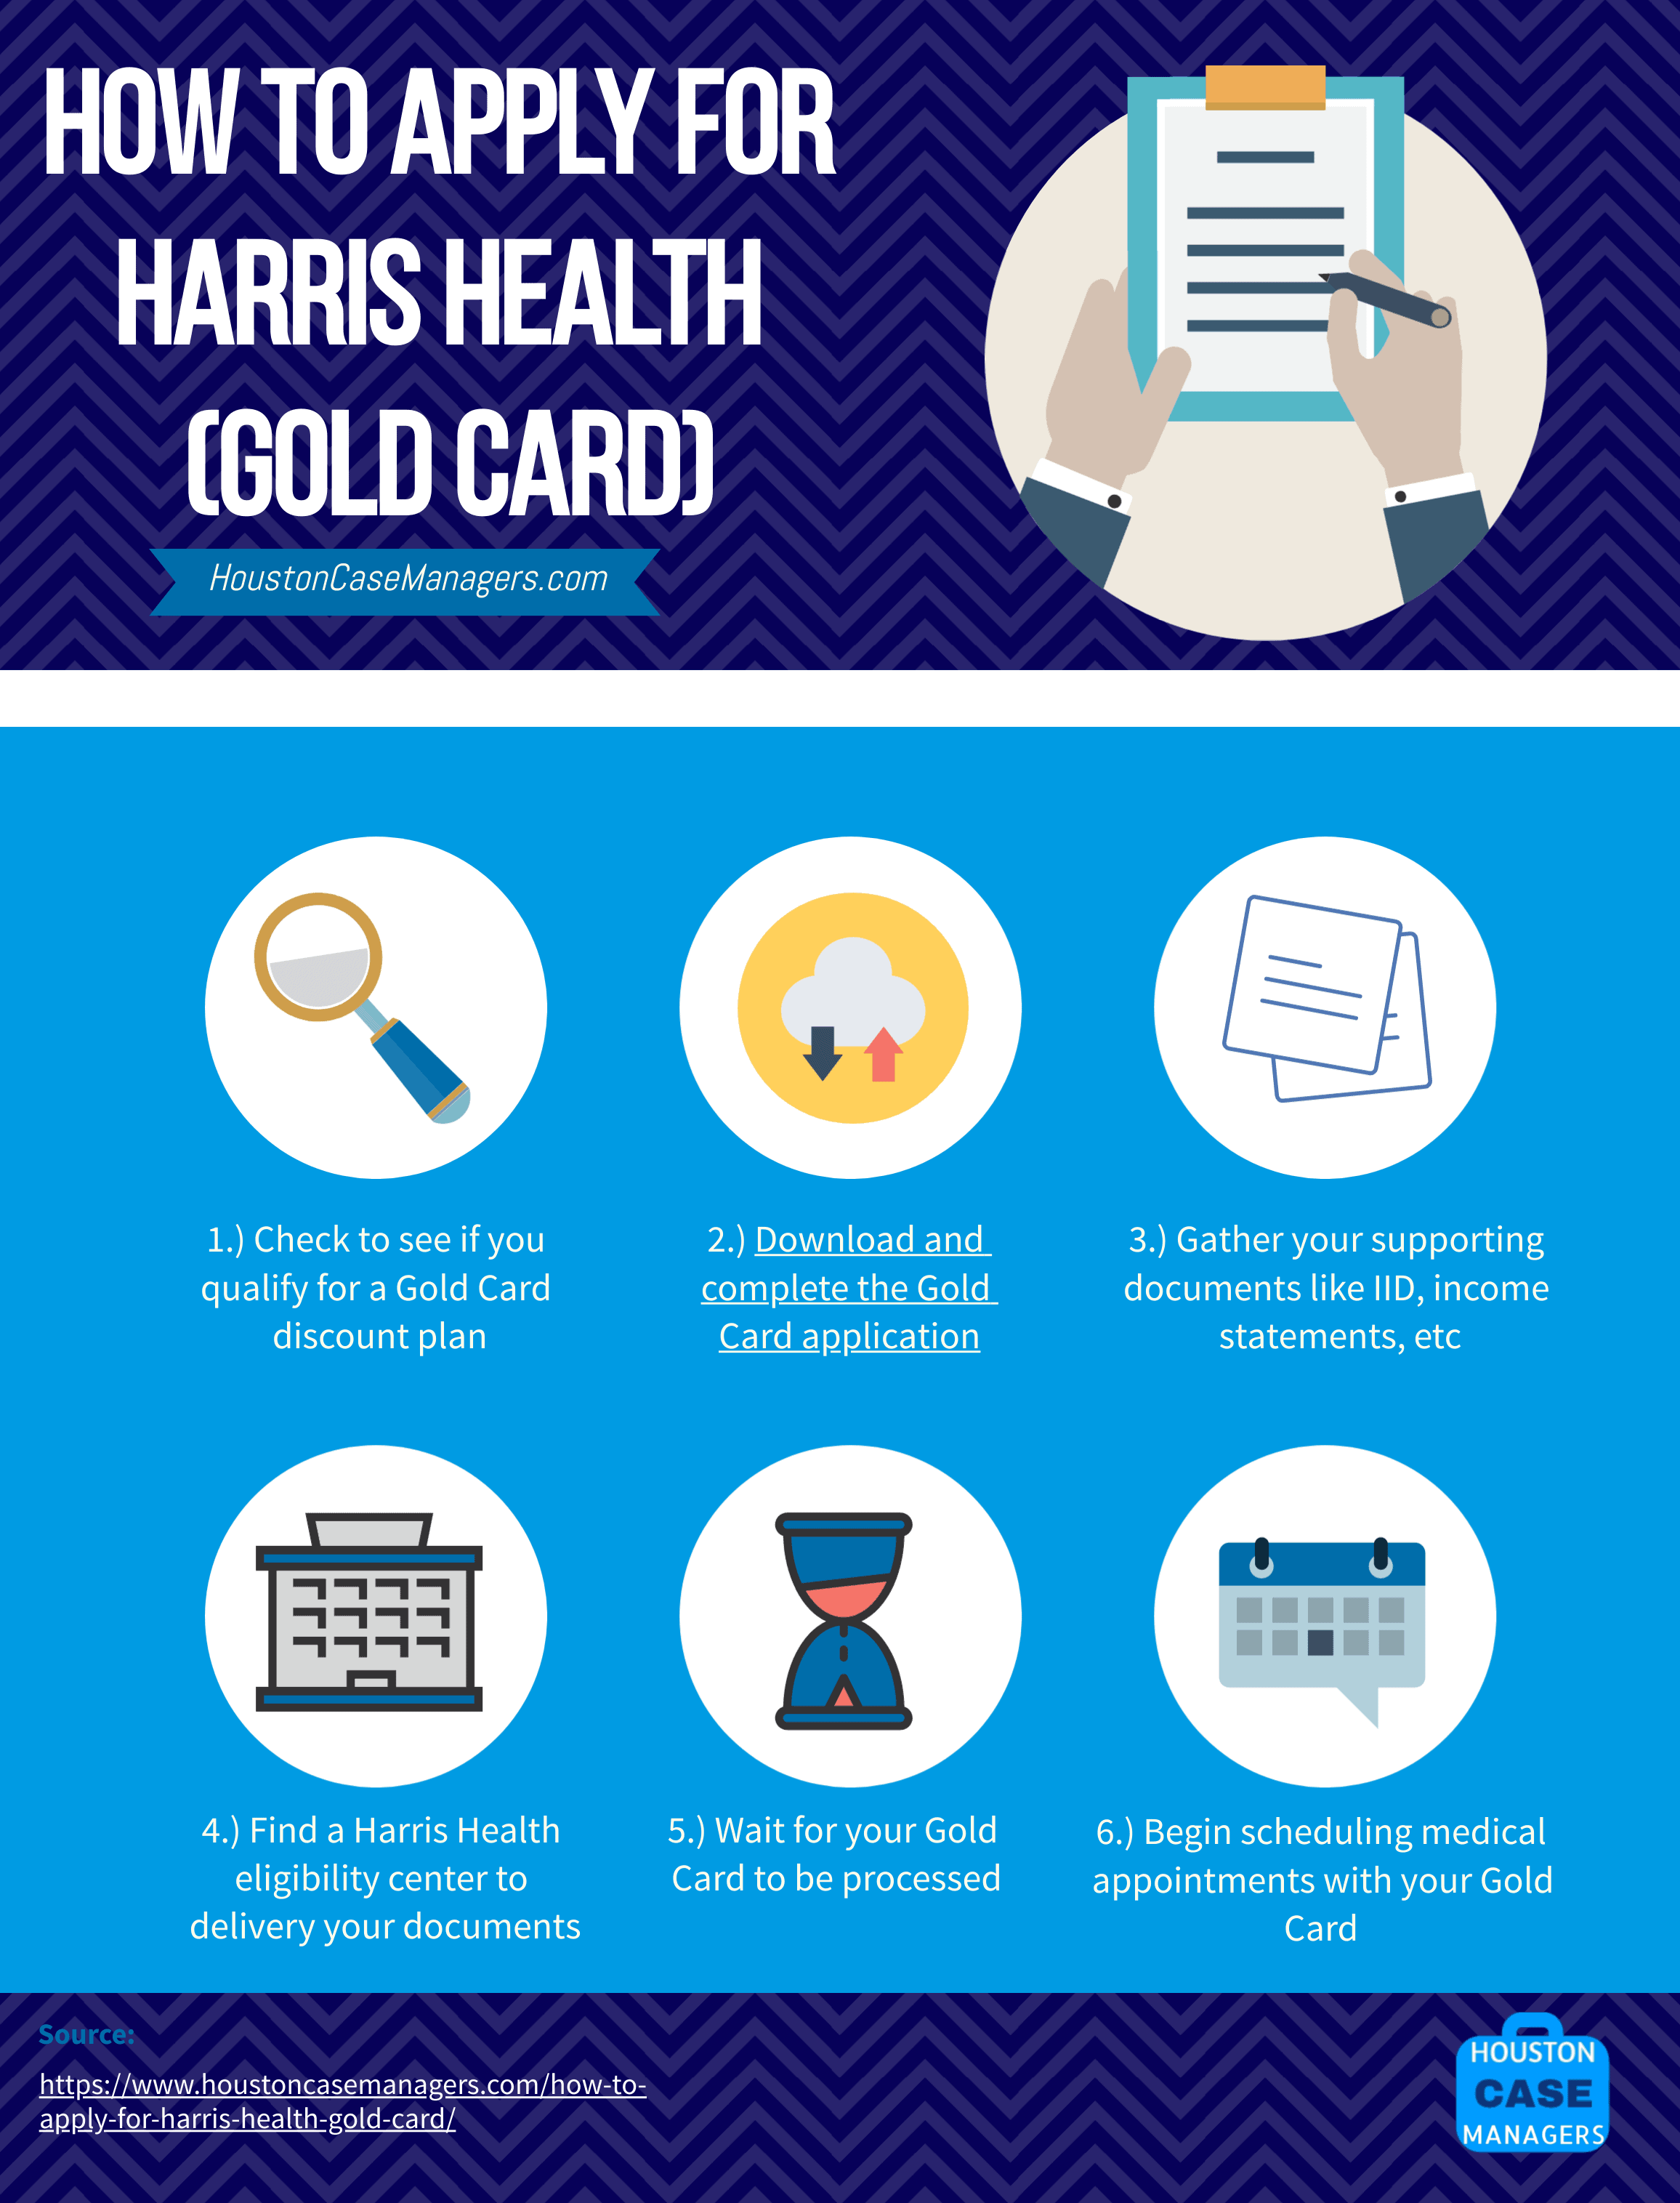 harris health gold card